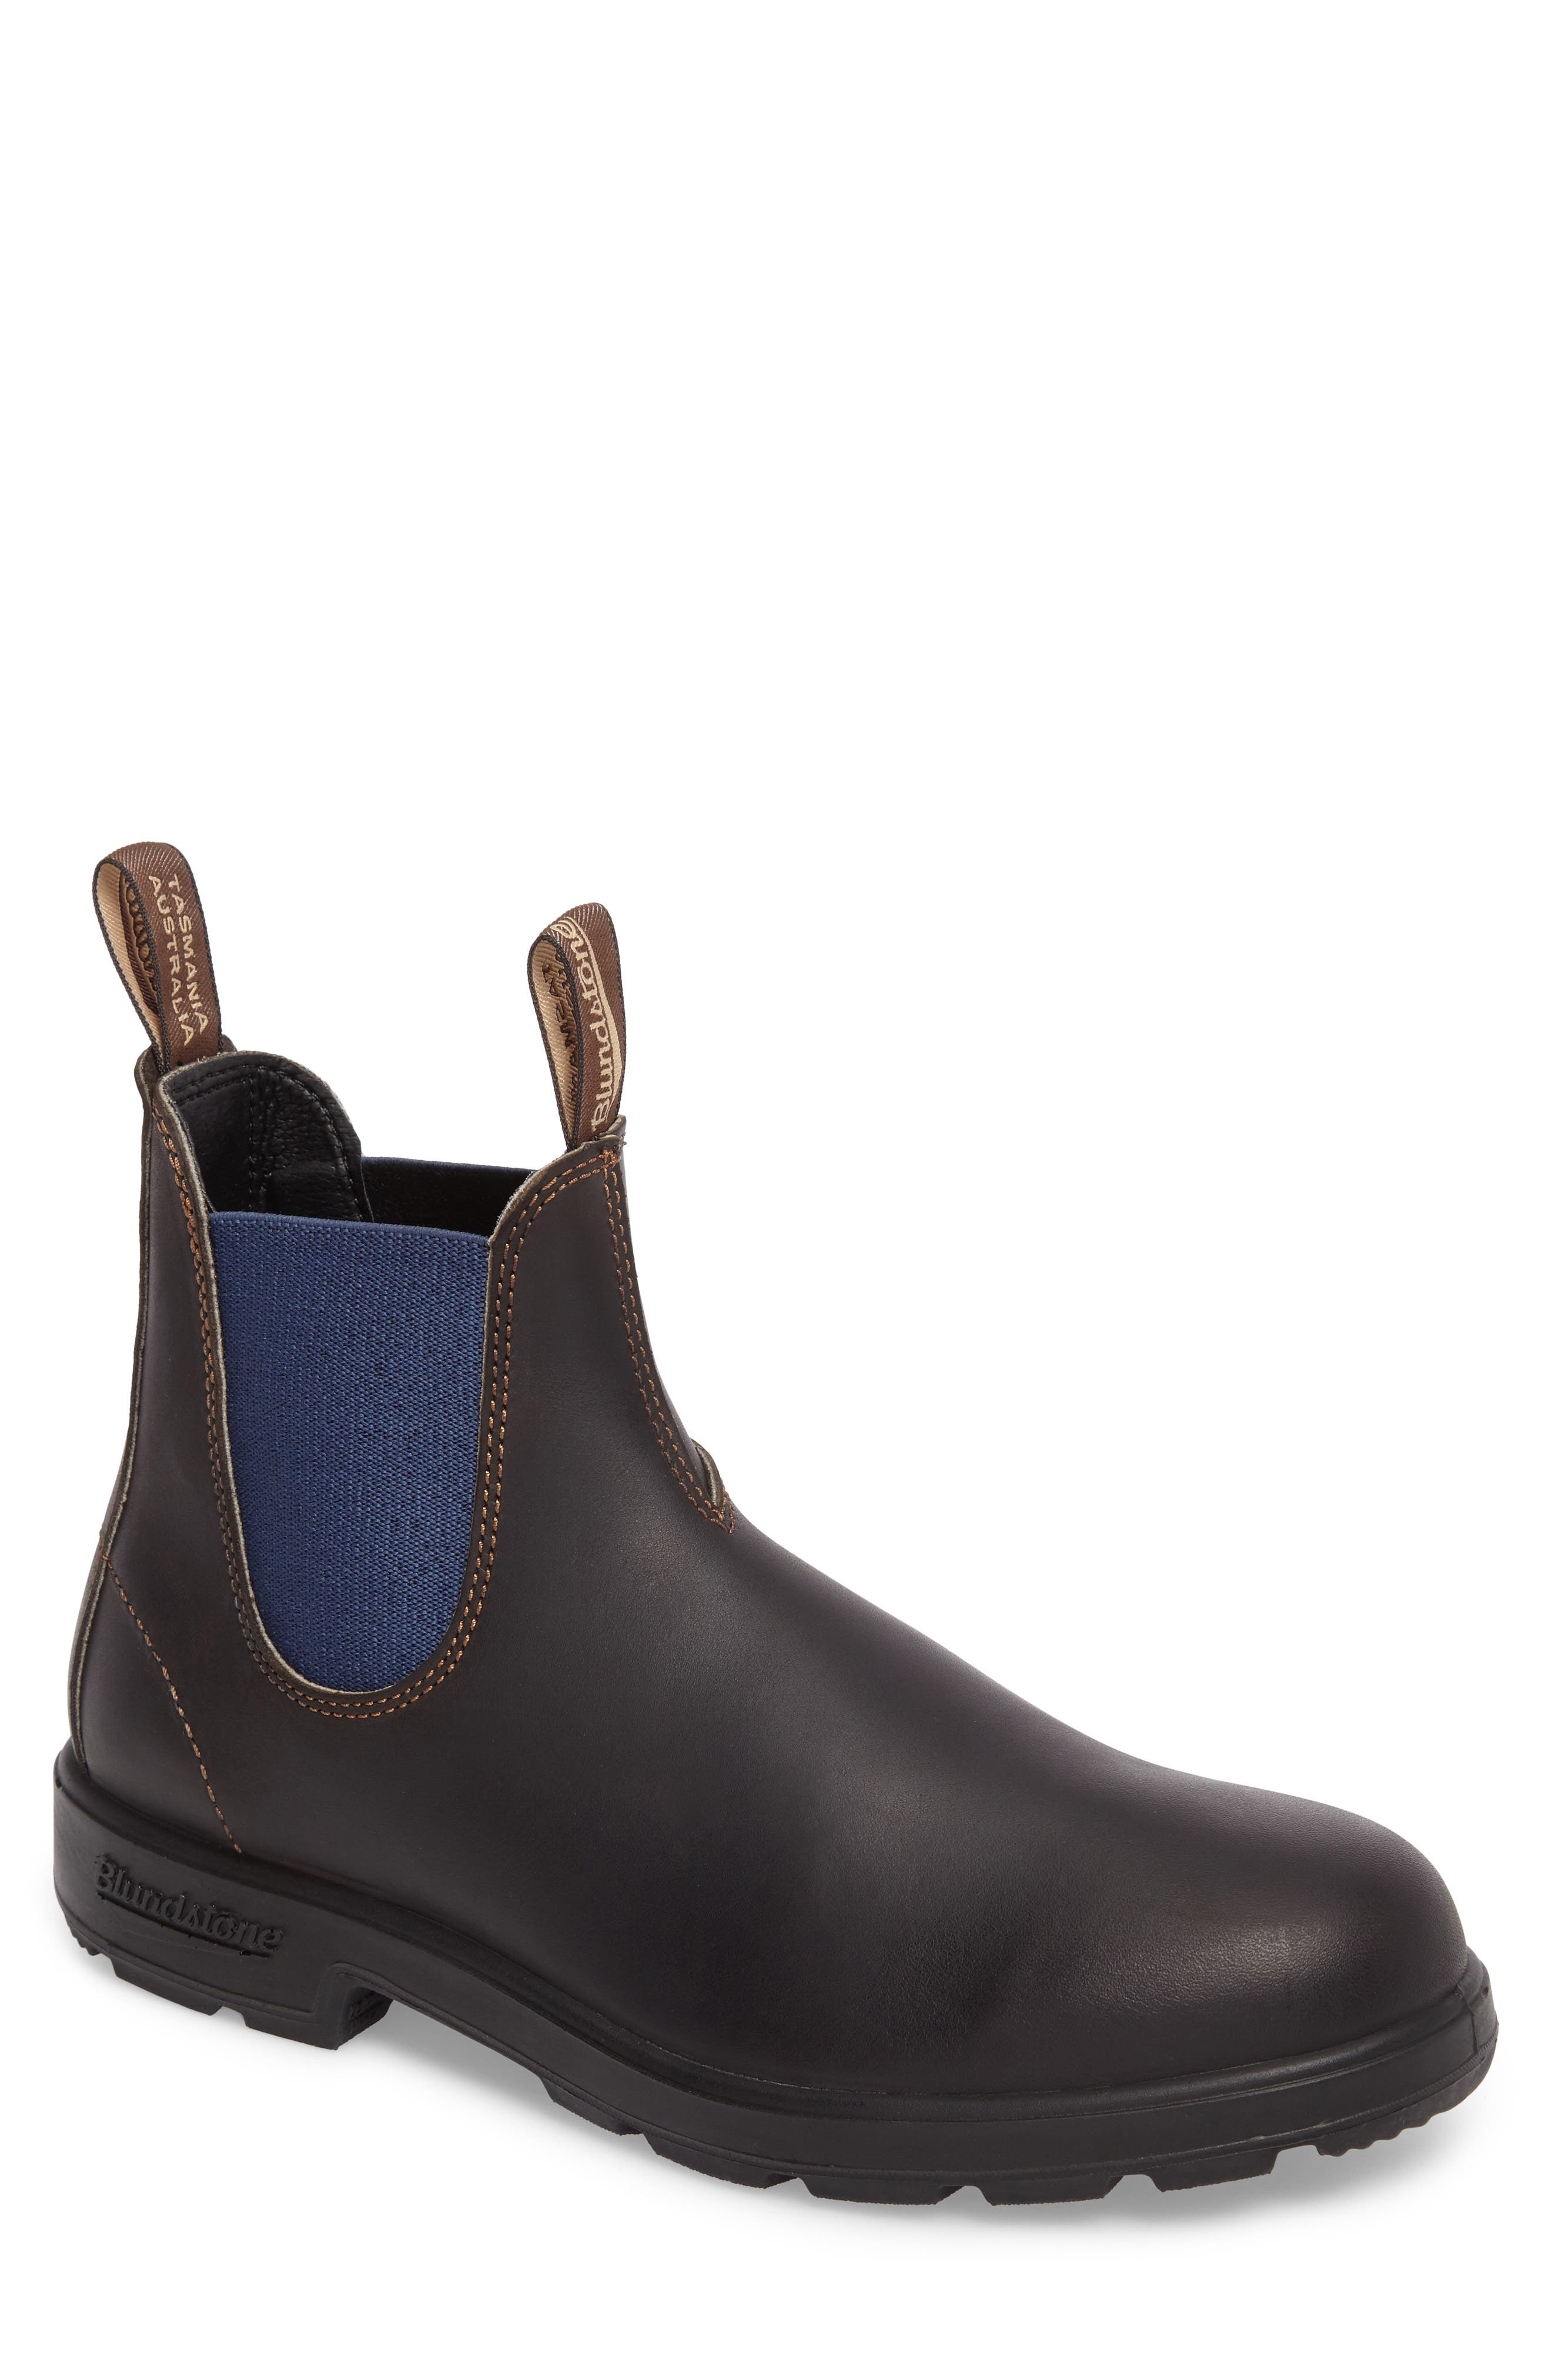 Blundstone Chelsea Boot, Brown